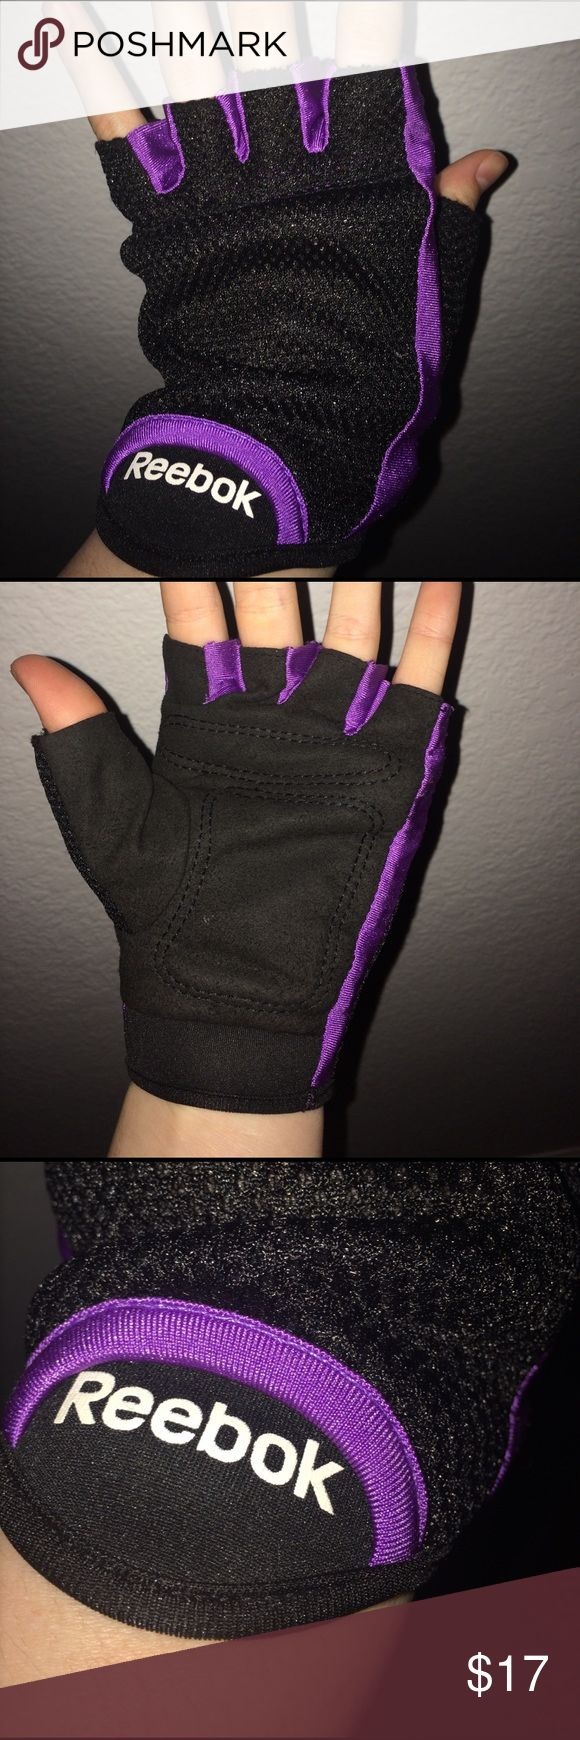 Woman's reebok fingerless cycling gloves In great condition! Fingerless cycling gloves for women. Great stitching and color detail. Very comfortable and reliable. Reebok Other